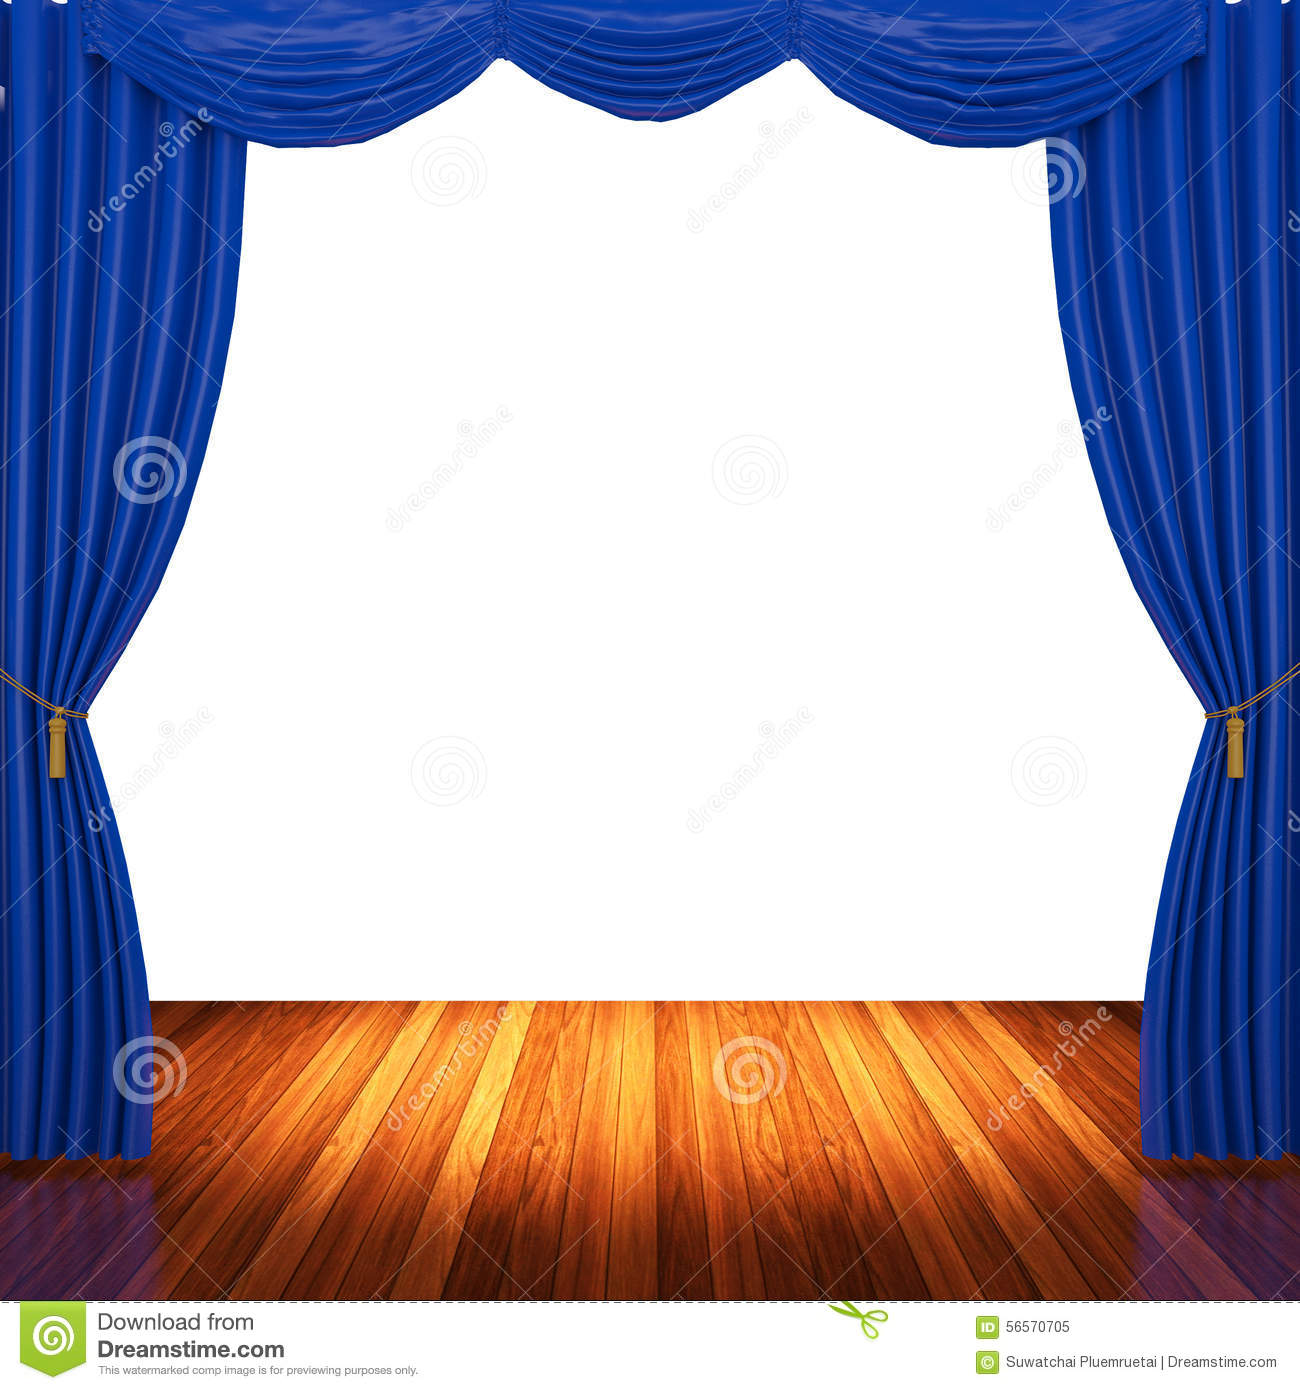 Stage curtains spotlight - Stage With Blue Curtains And Spotlight Stock Photo